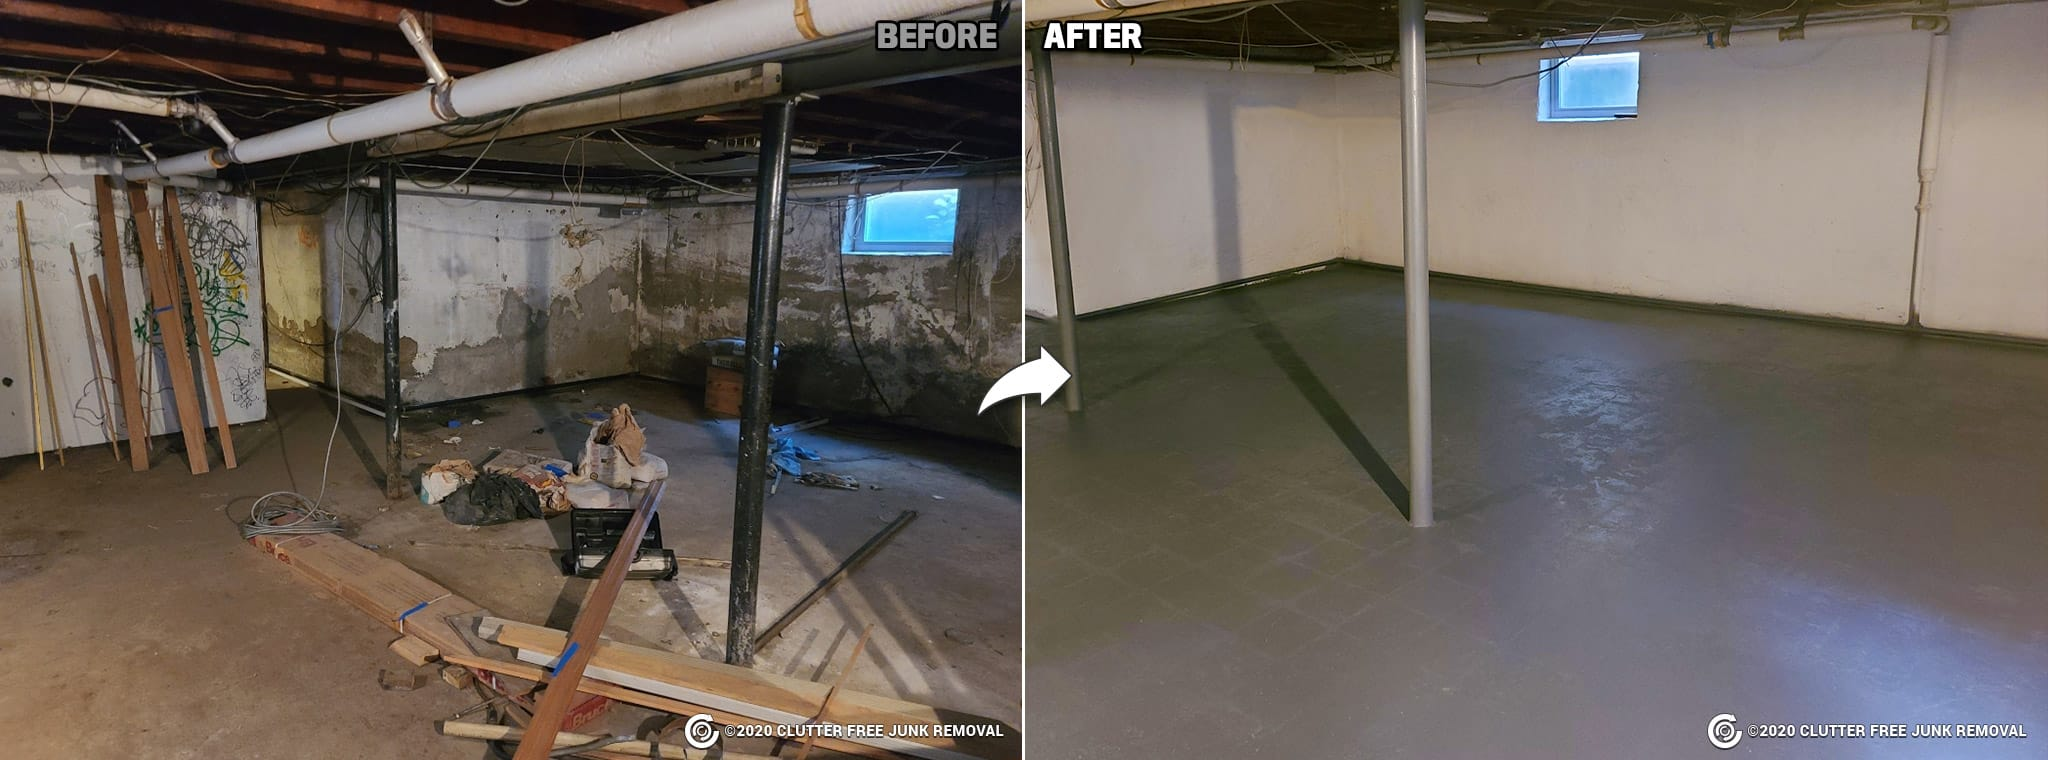 Basement and Attic Cleanup Service